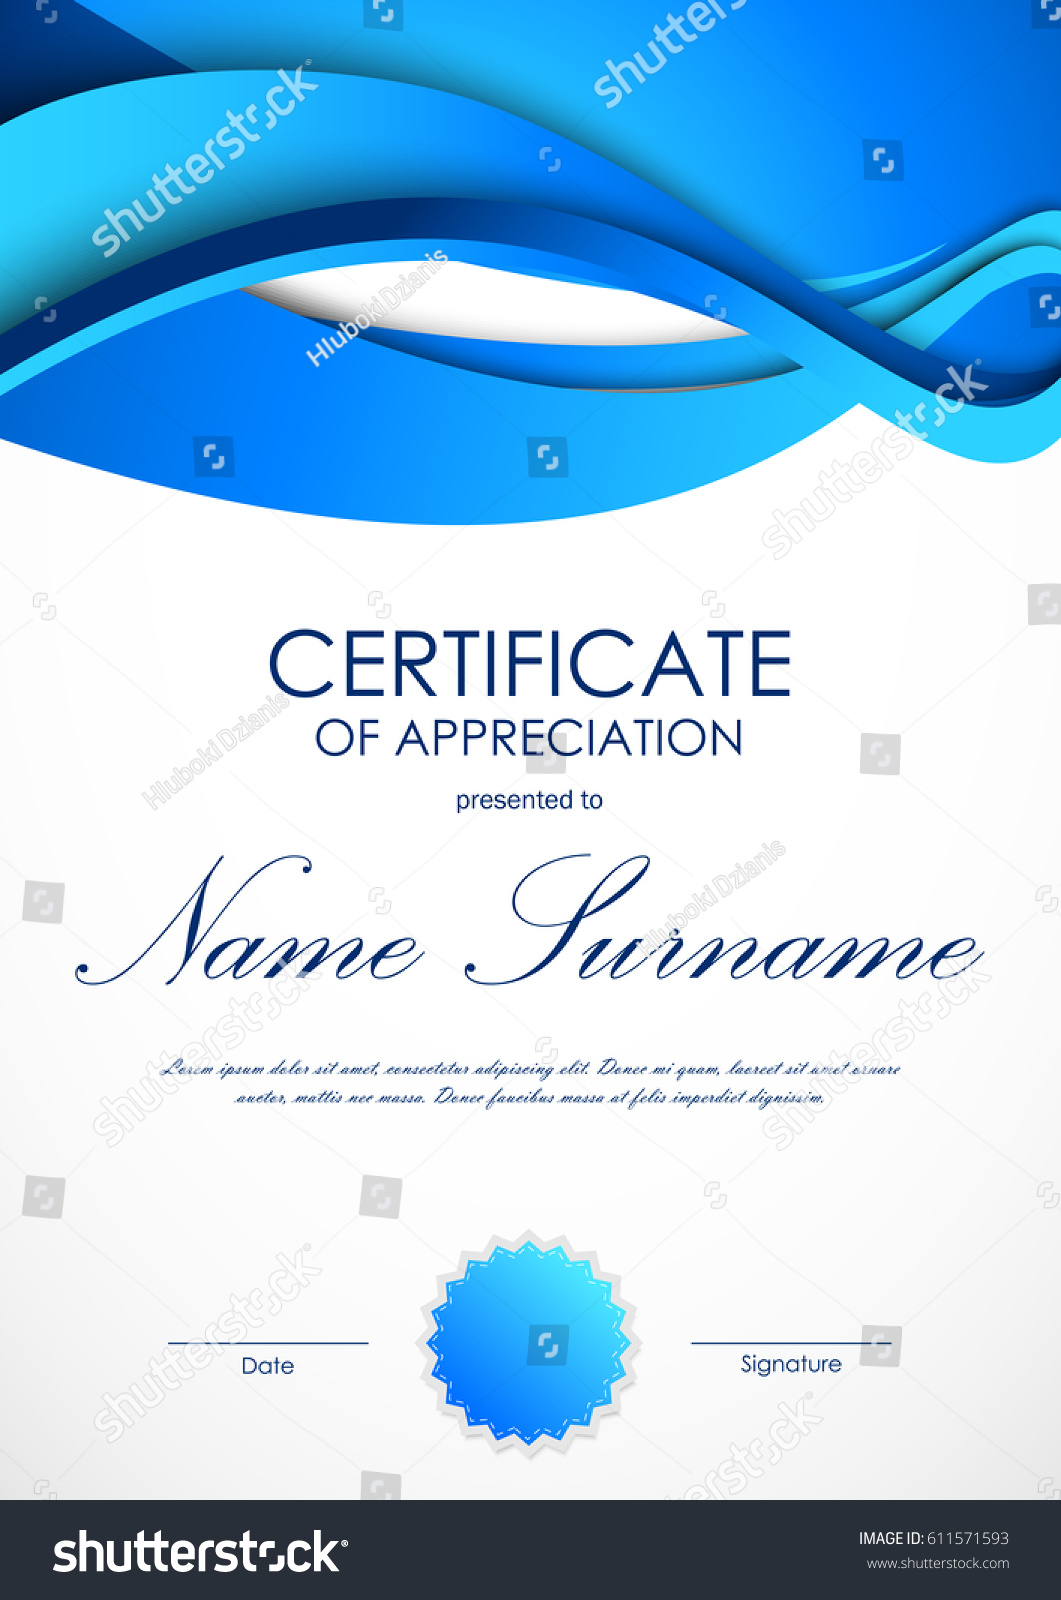 Certificate Appreciation Template Blue Dynamic Material Stock Vector